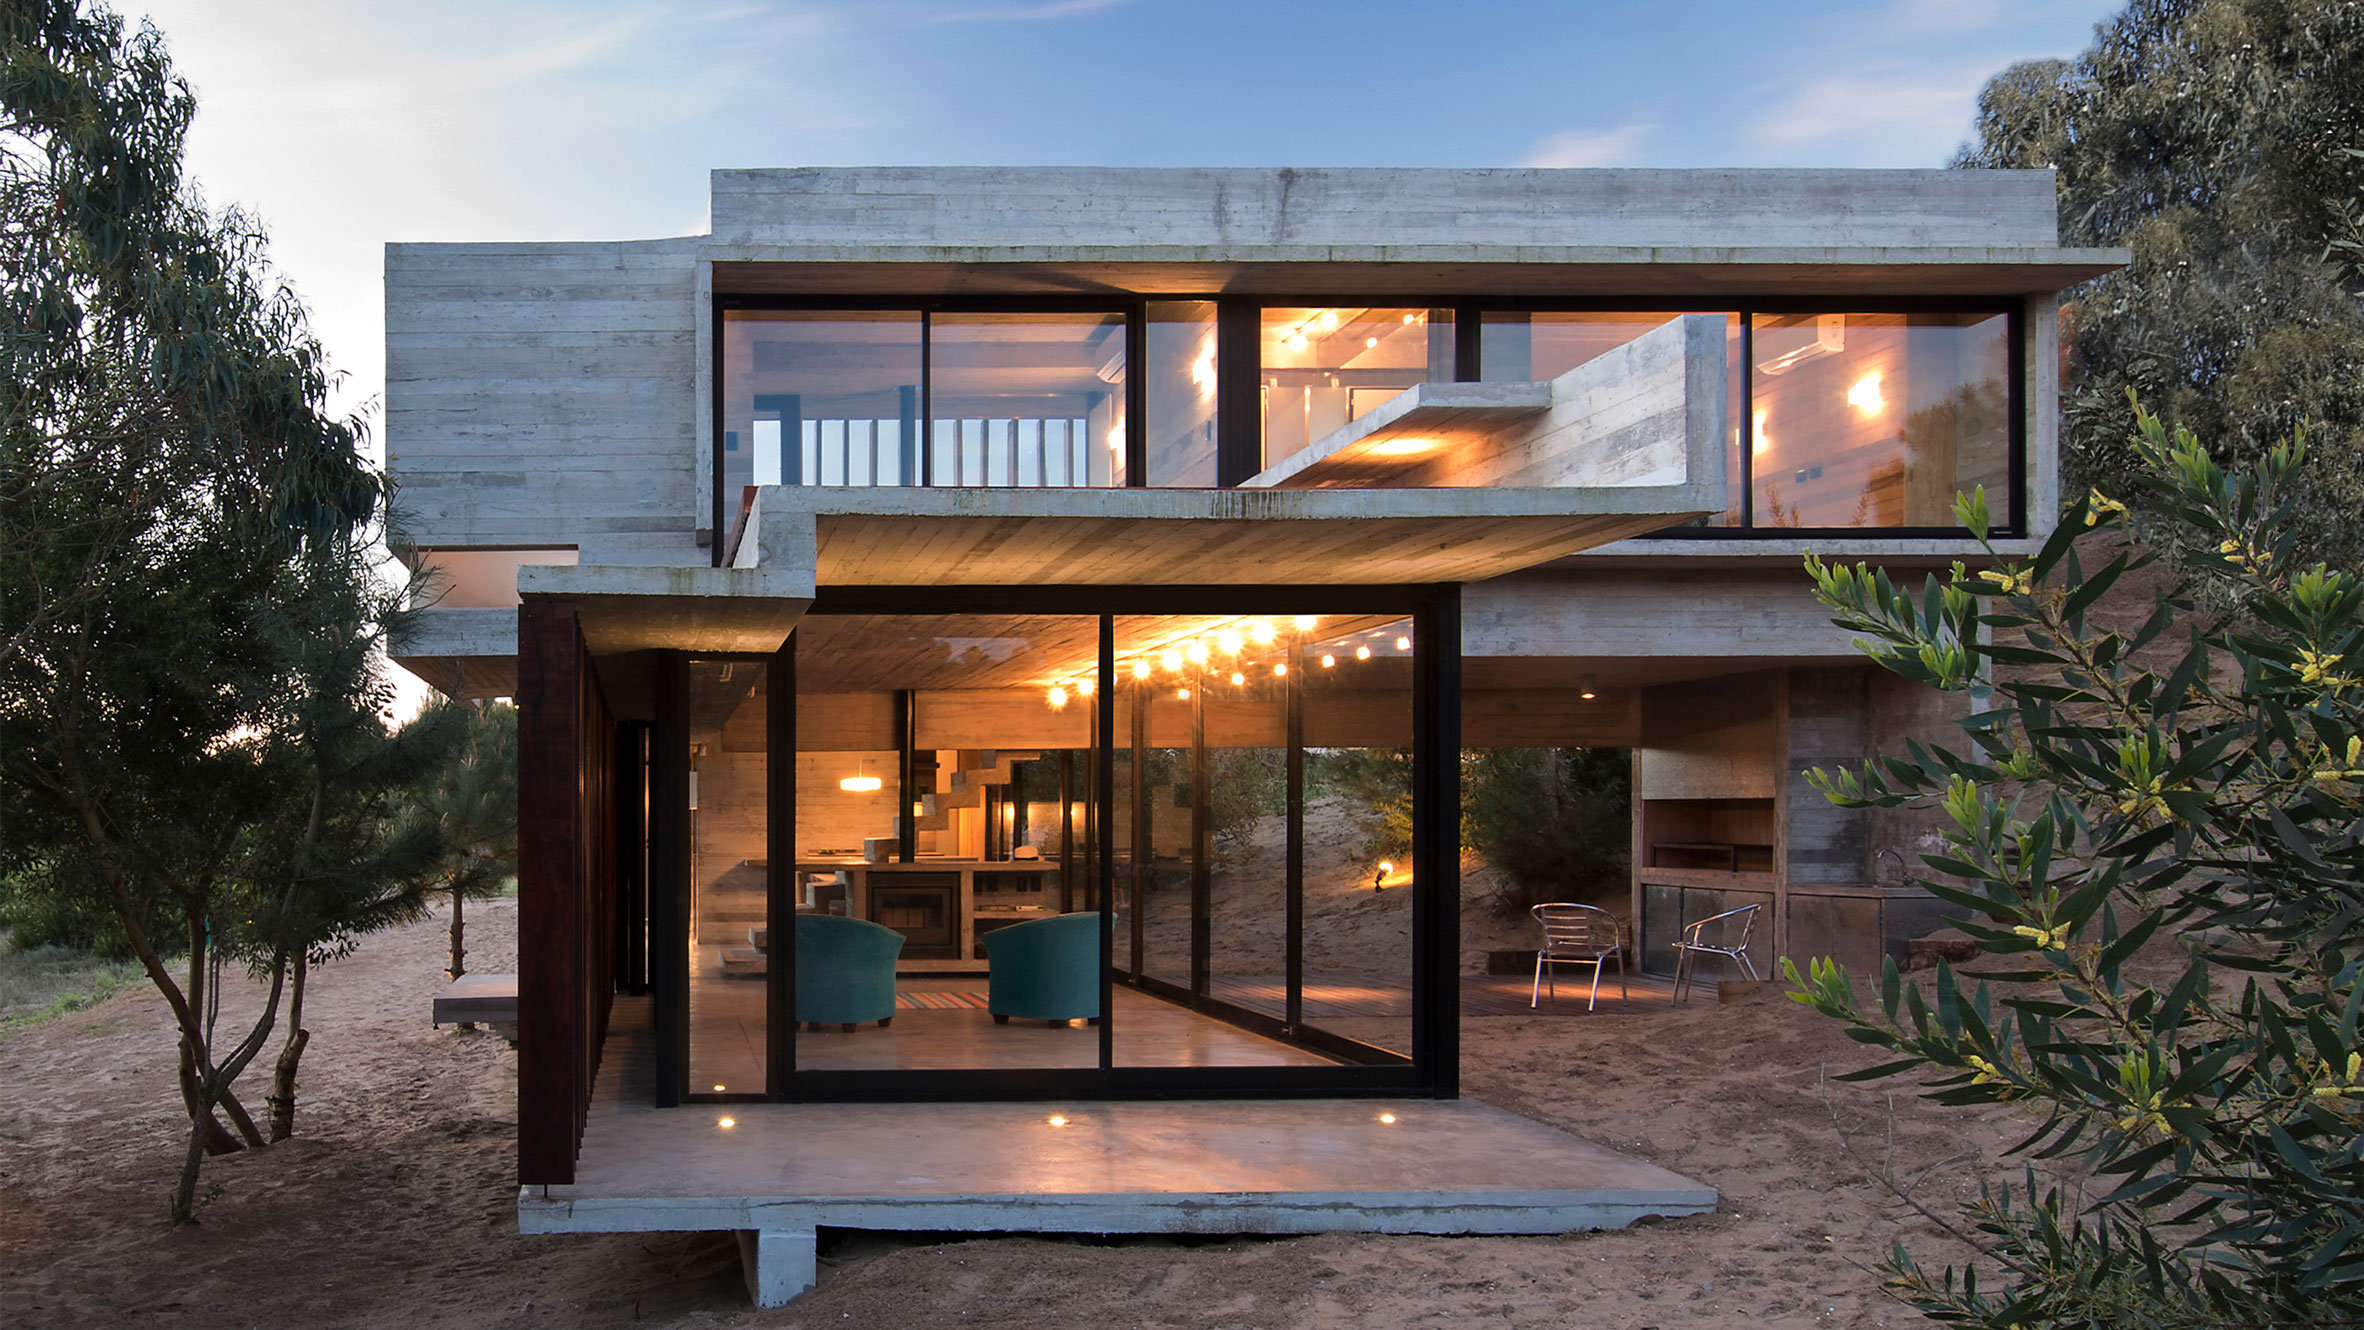 Casa MR concrete house by Luciano Kruk